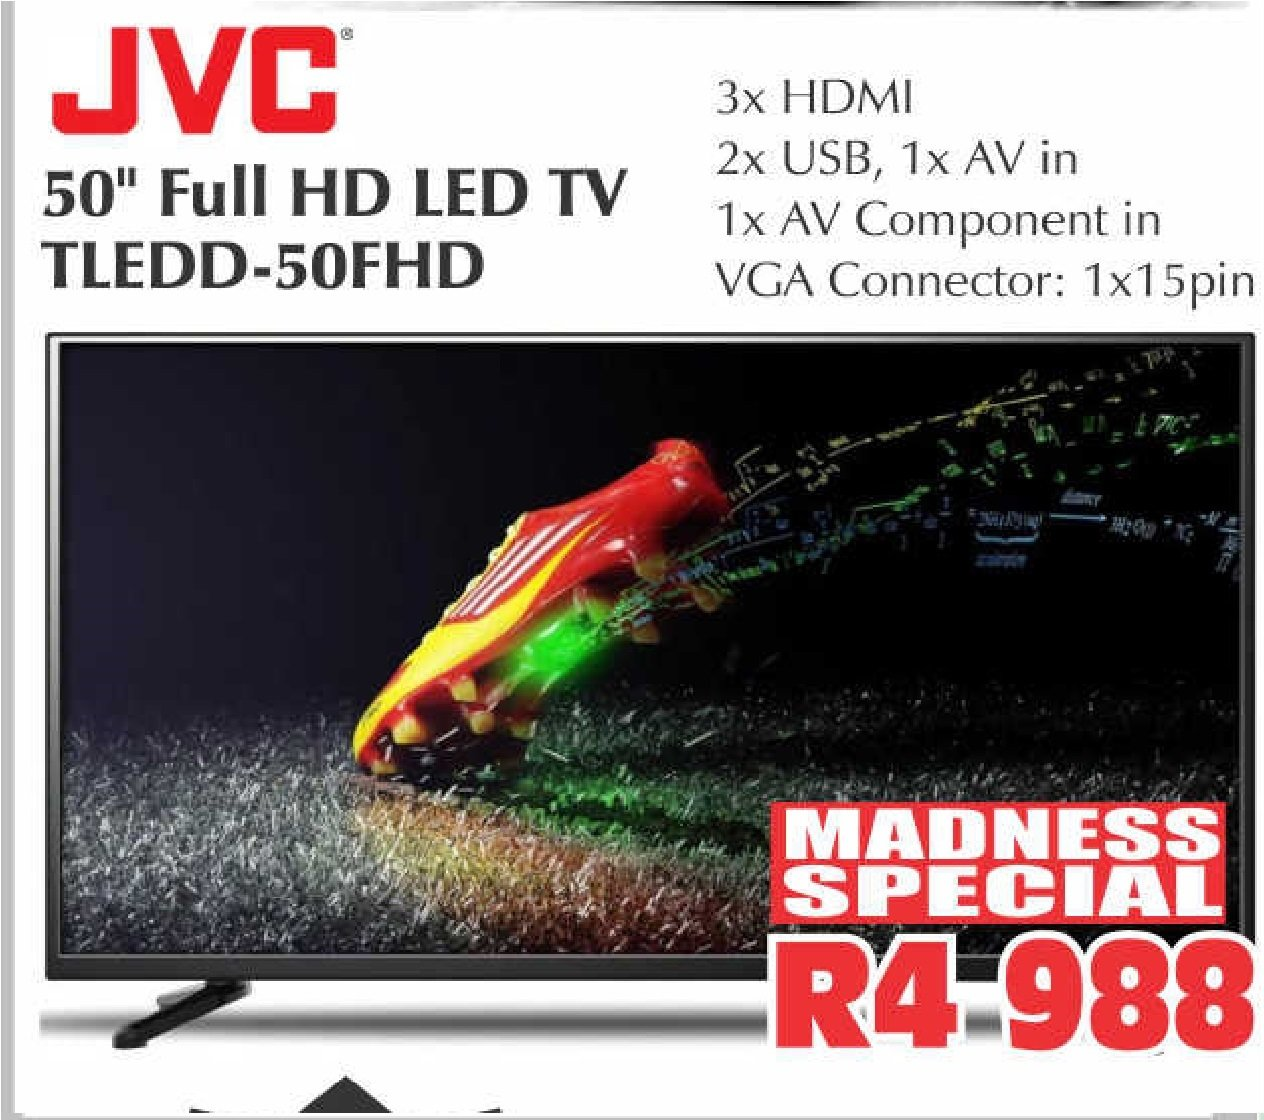 "JVC 50"" FULL HD LED TV TLEDD-50FHD"